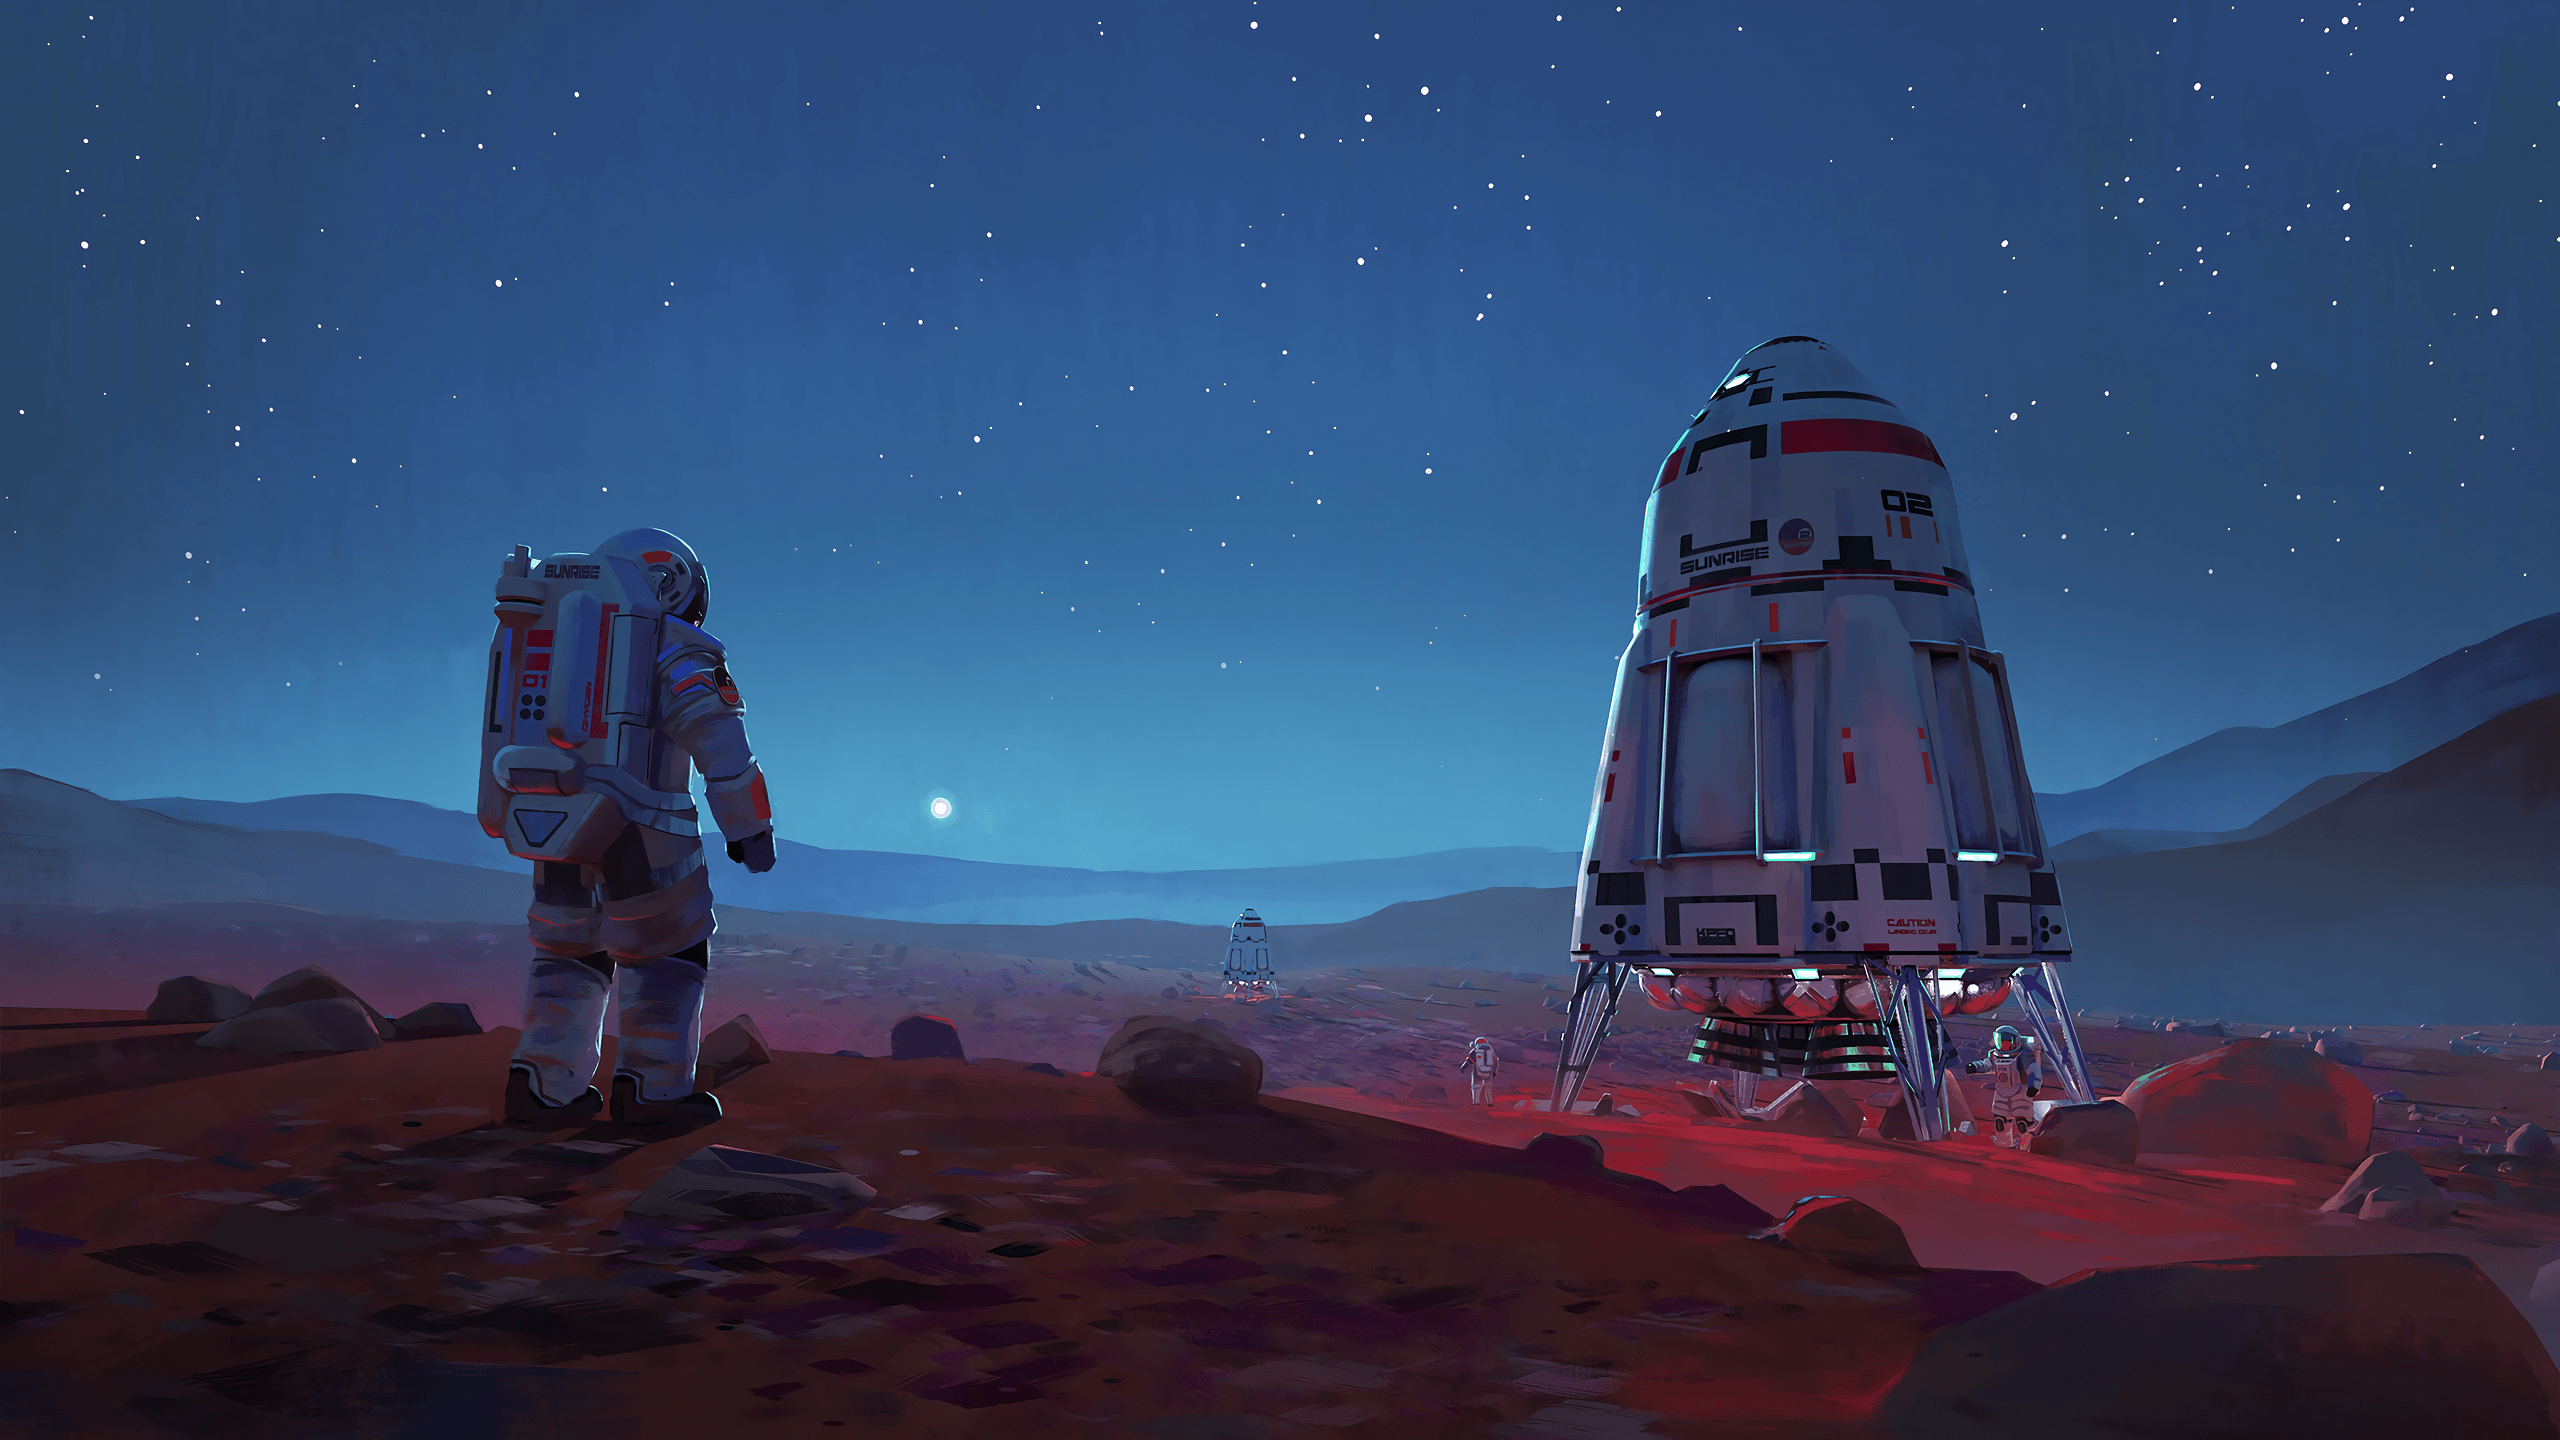 2560x1440 228 Astronaut HD Wallpapers   Background Images - Wallpaper Abyss